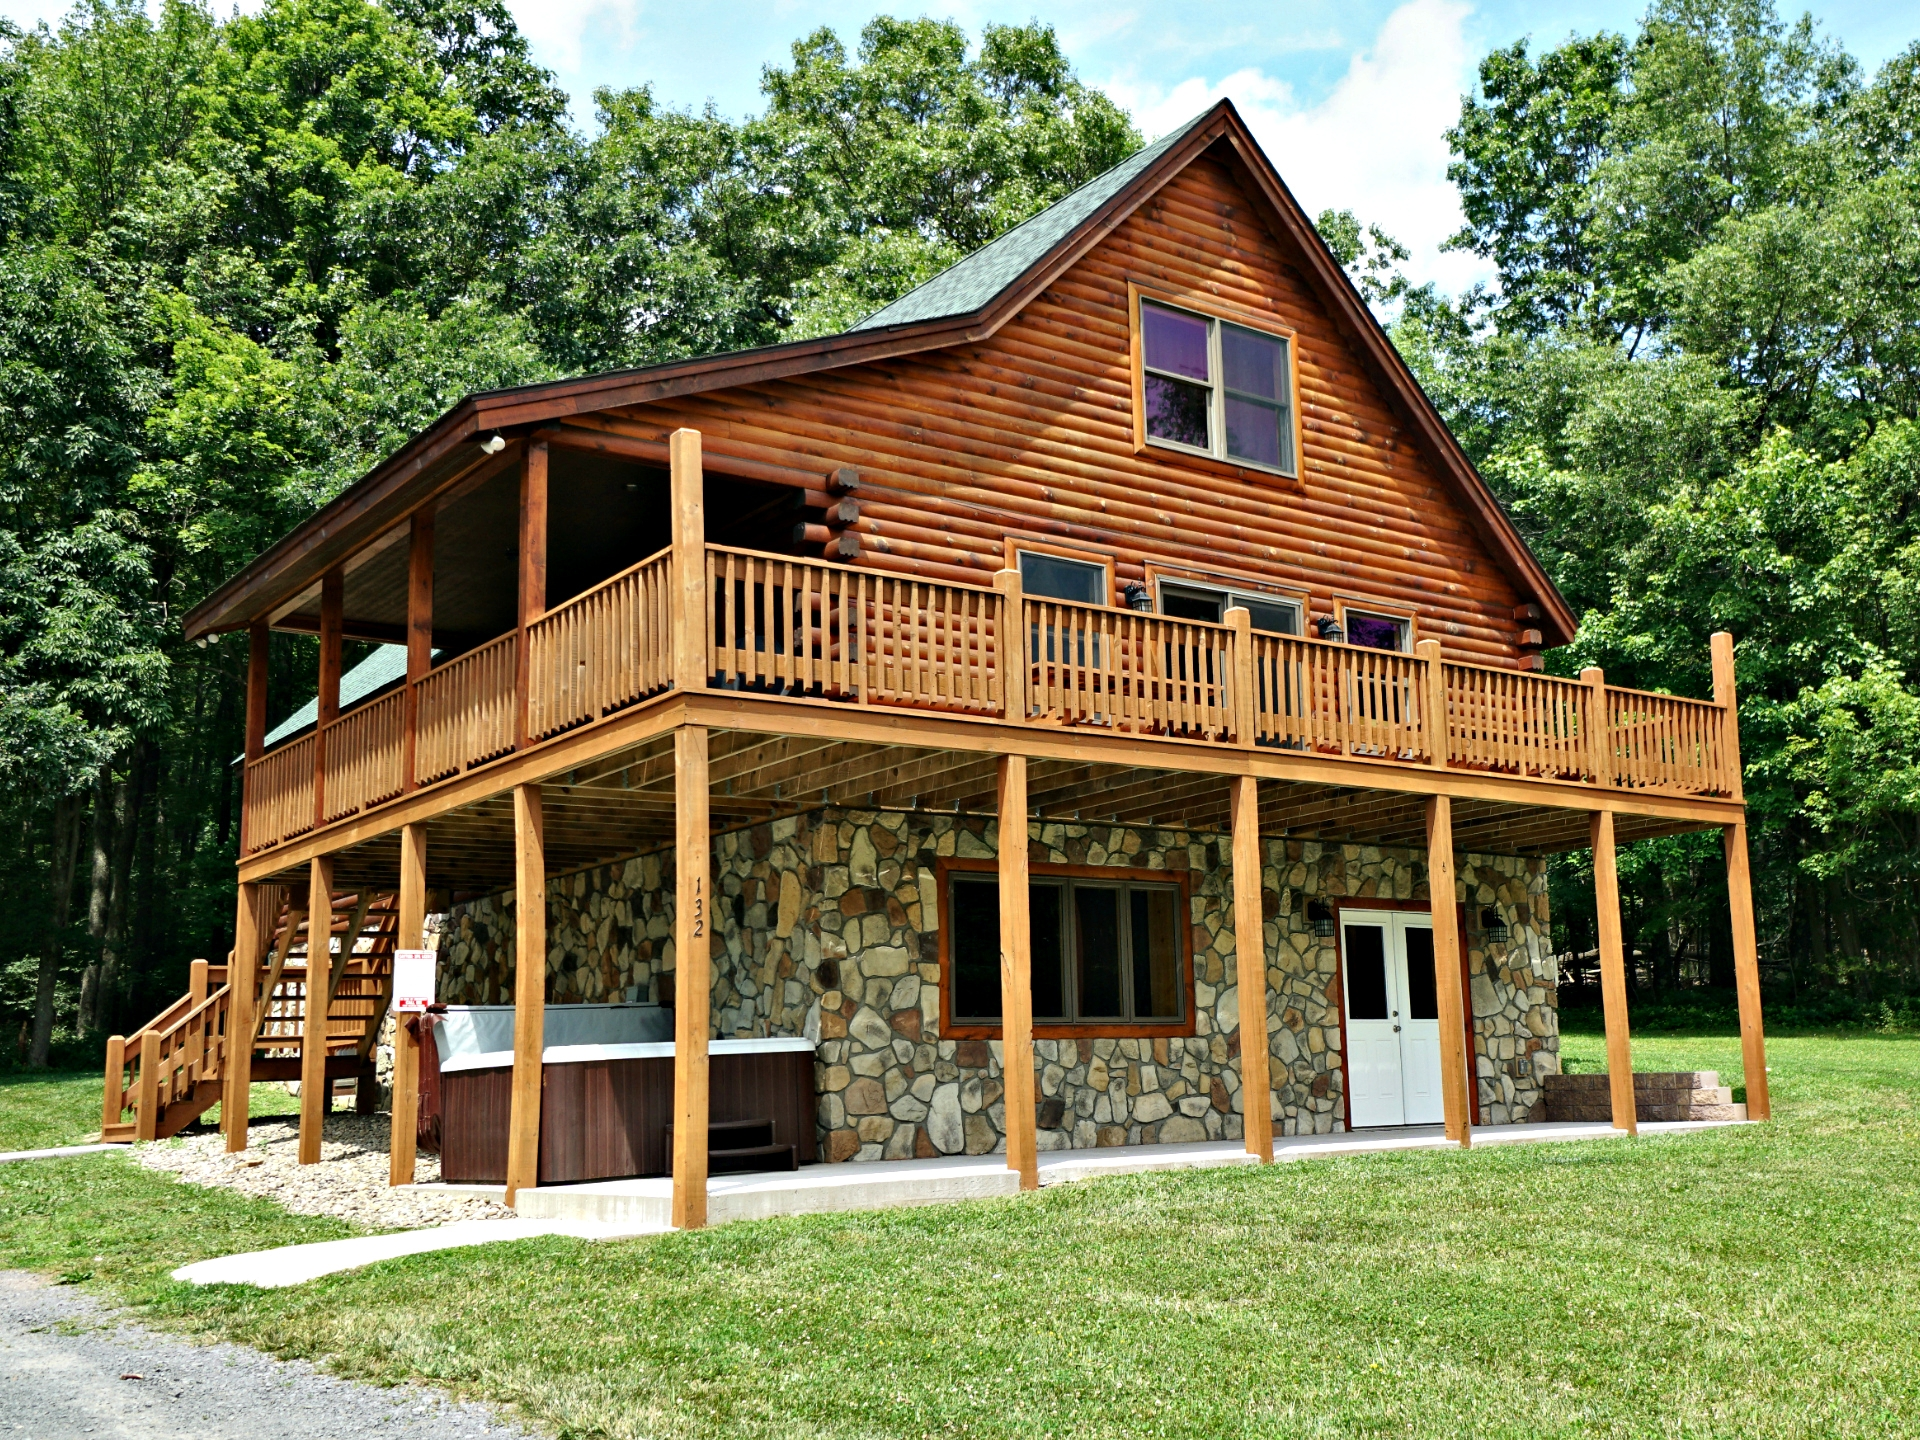 quite estes square home log cabins construction park for standard and article rent per price available common foot as destination over pay articles purchase a homes premium are colorado typically not buyers